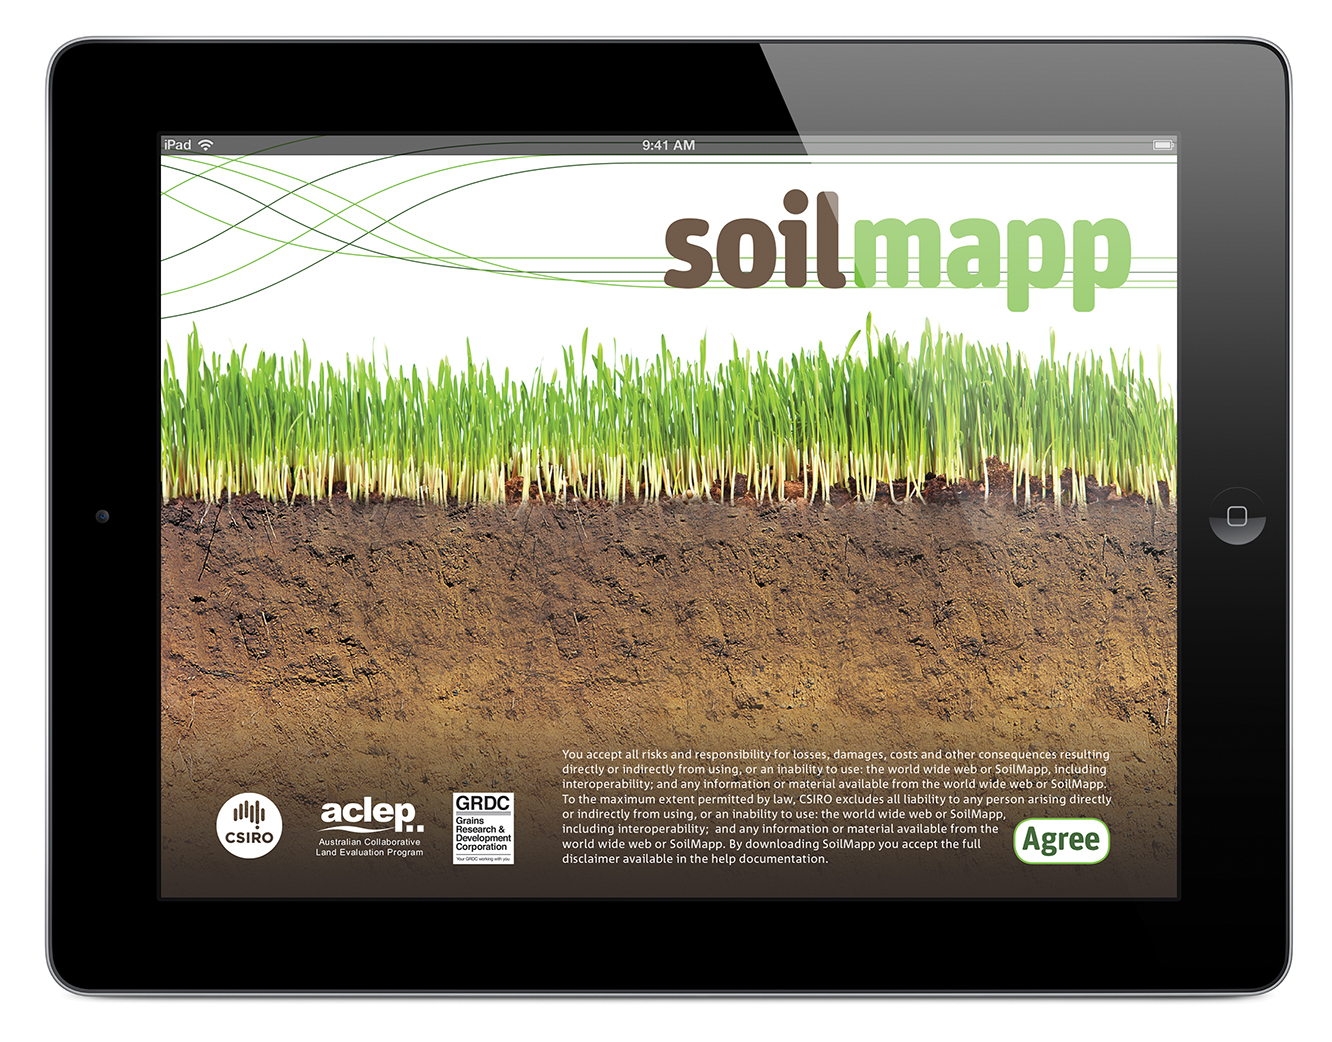 Screen shot of the SoilMapp app on an iPad.